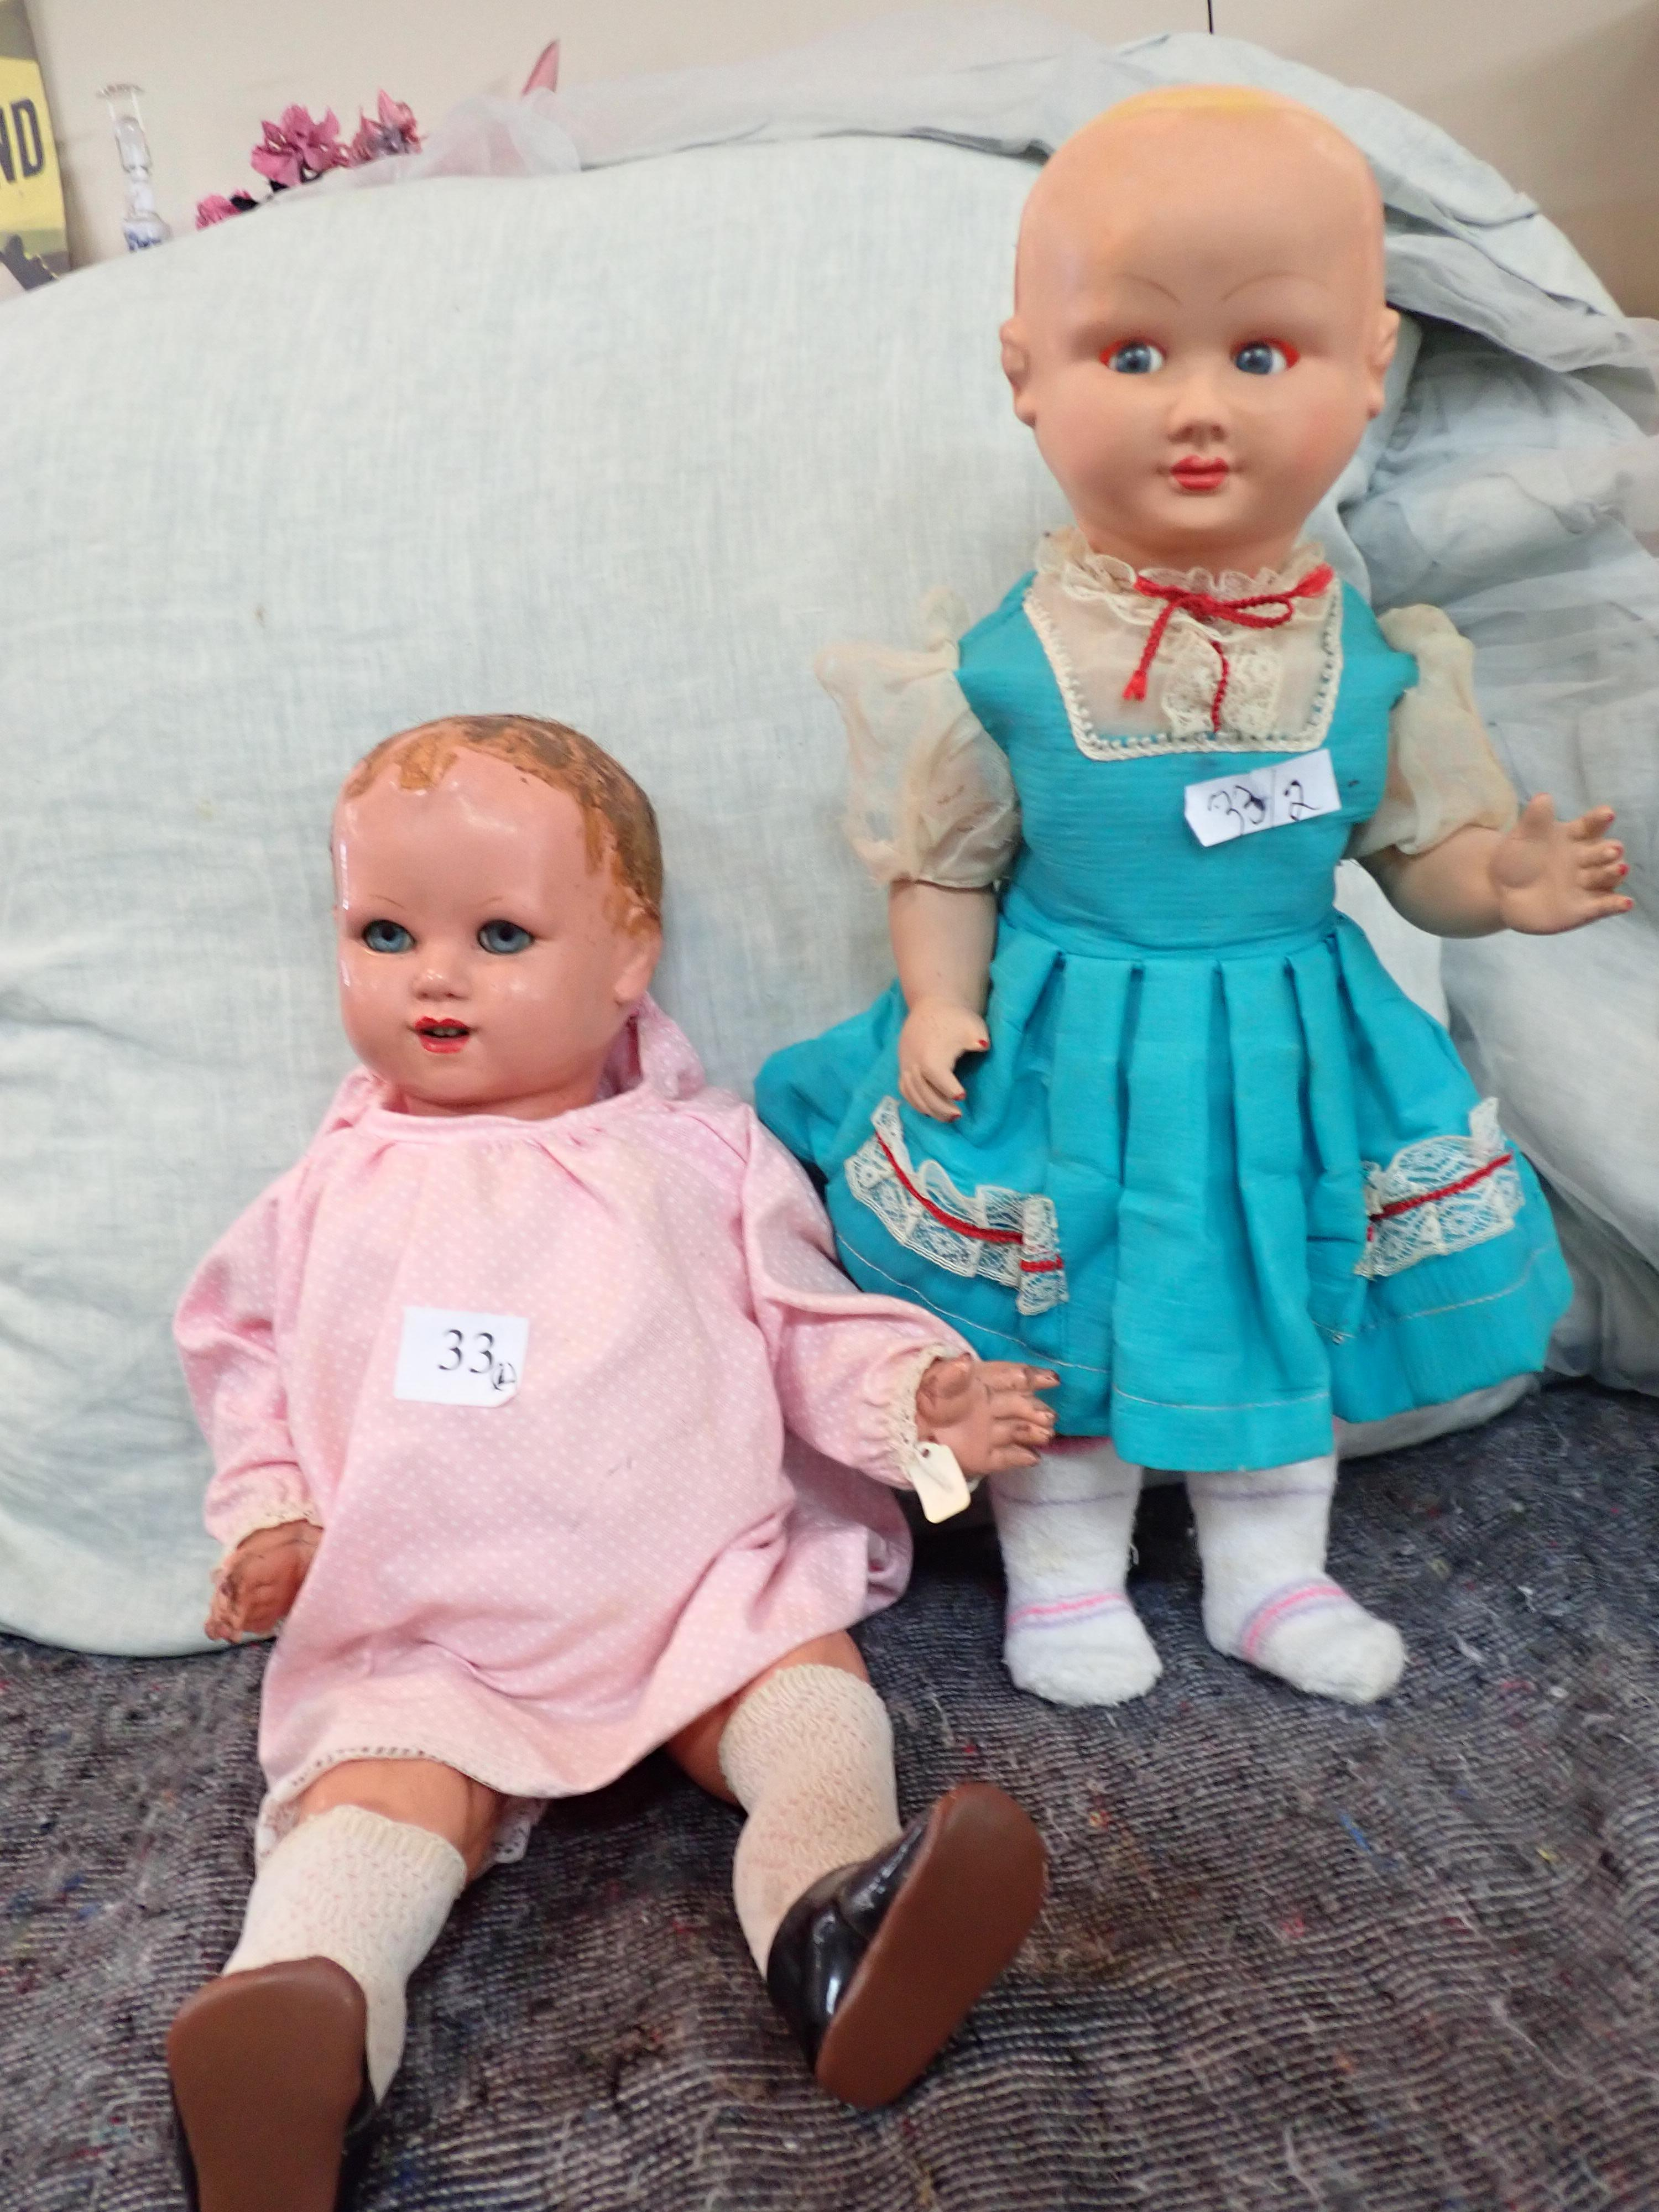 """2 EARLY COMPOSITION DOLLS (1) HAS DAMAGE TO FINGERS AND GLUE RESIDUE TO HEAD, OTHERWISE GOOD FOR AGE, SLEEPING EYES 19"""" HIGH (2) VERNA 17"""" HIGH HARD PLASTIC DOLL, NO WIG, FLIRTY EYES WITH VOICE BOX A/F OTHERWISE IN GC - MADE IN AUSTRALIA"""